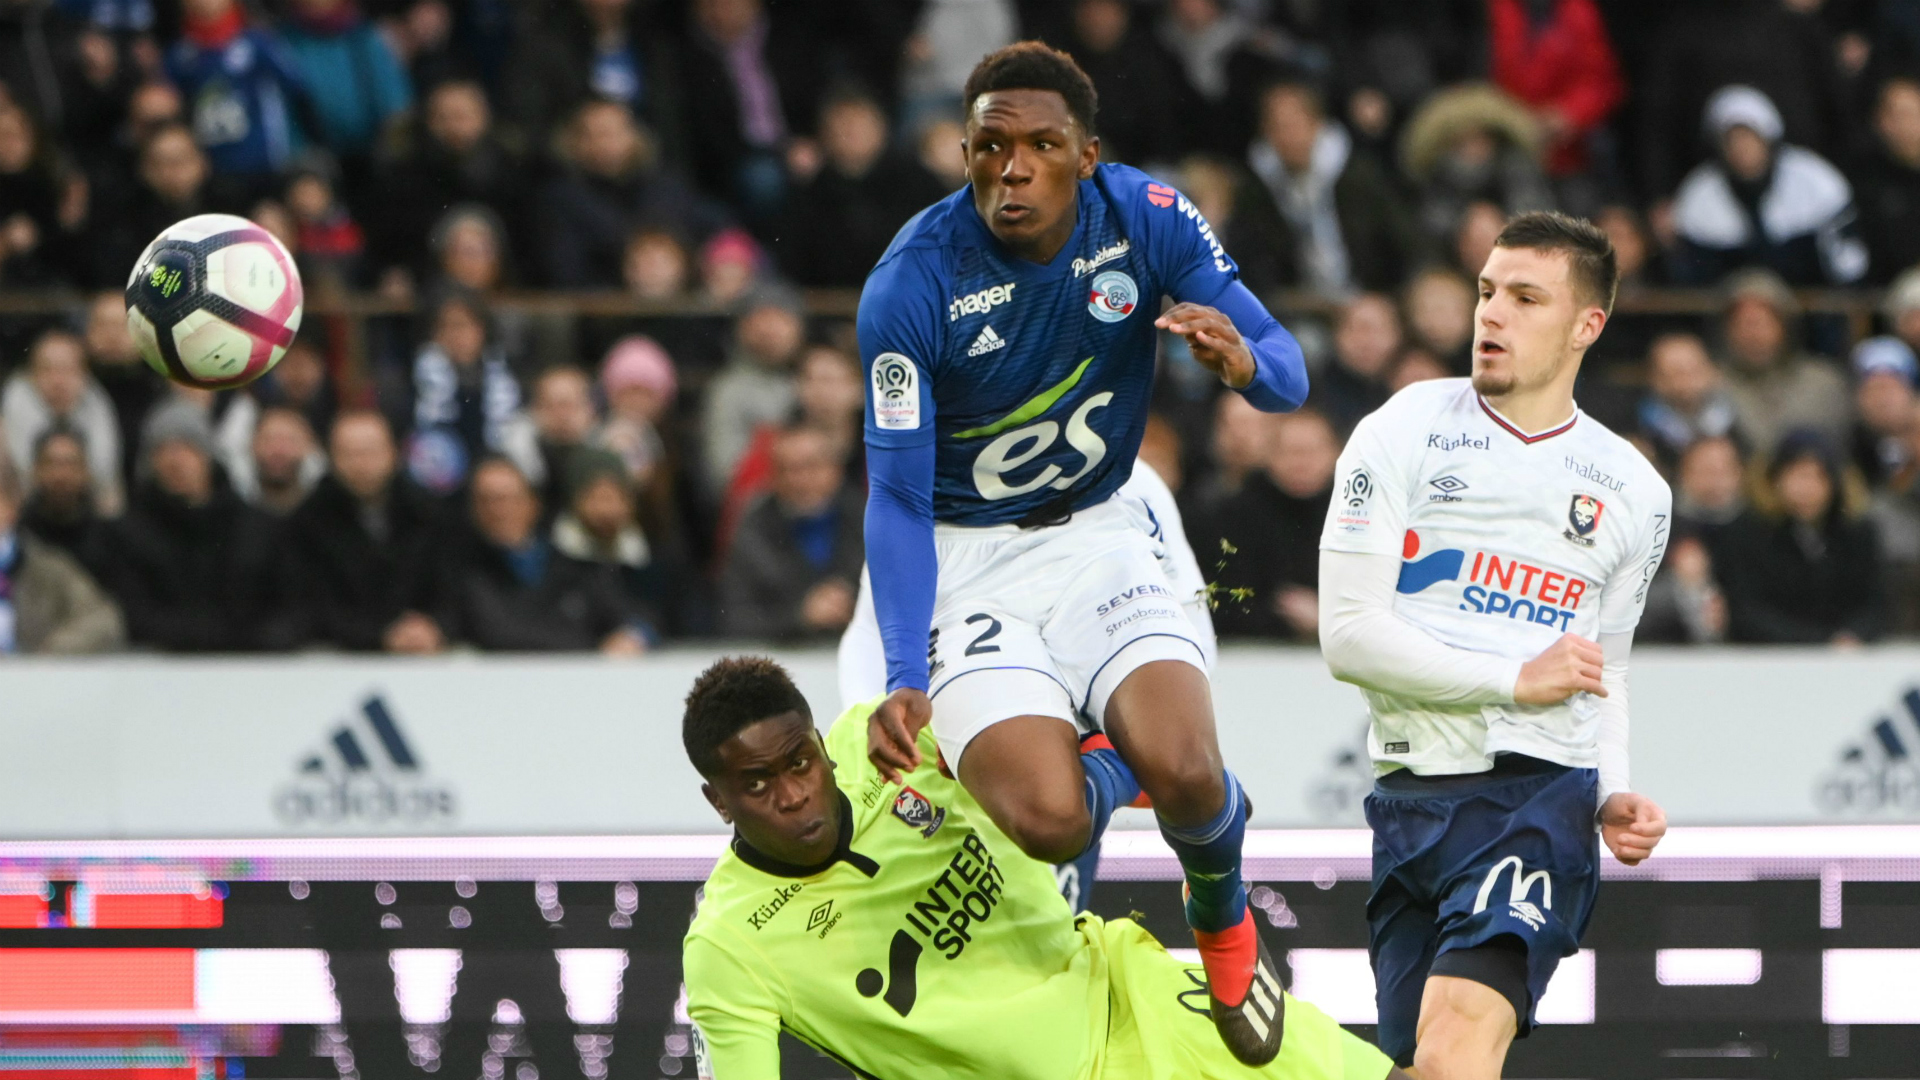 Strasbourg star Mothiba ruled out until 2021 with knee injury